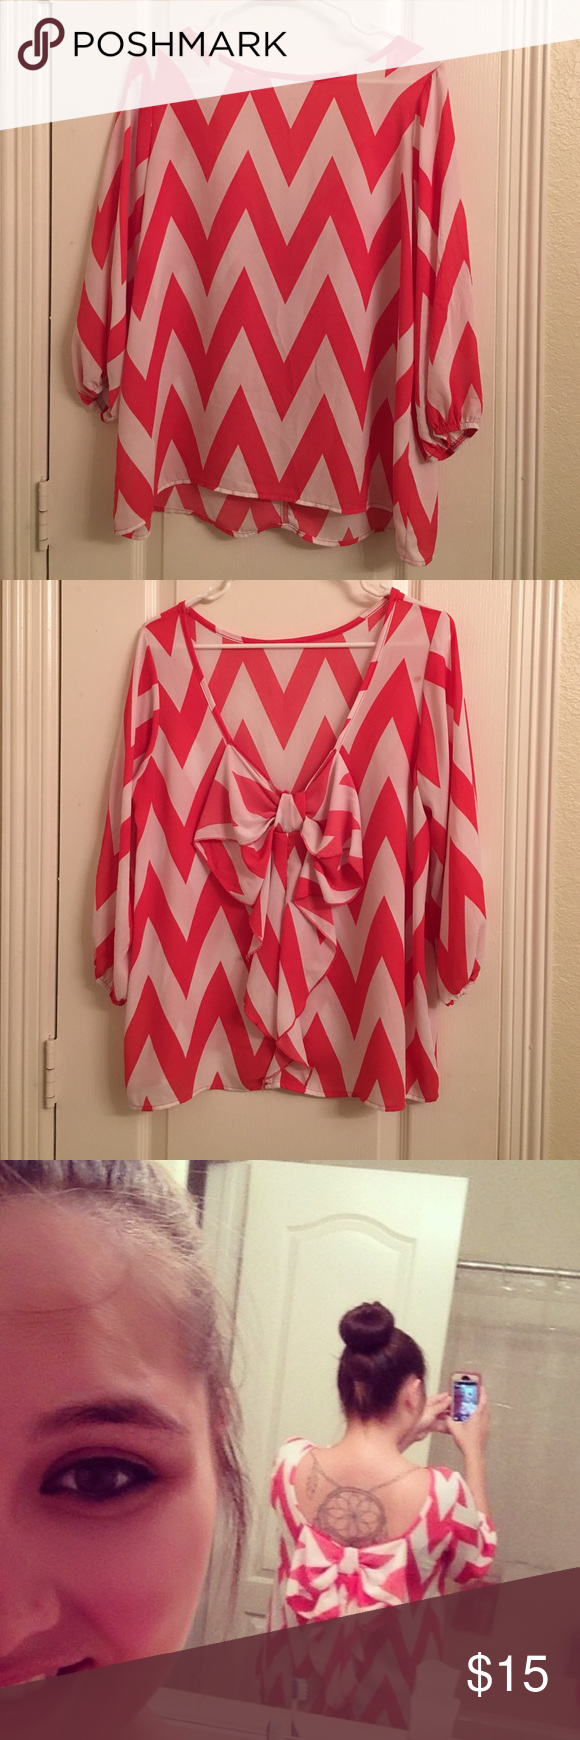 Boutique hi low blouse with bow on back Coral and white chevron blouse. Front is a little higher then the back. Back swoops down and has a cute bow Tops Blouses